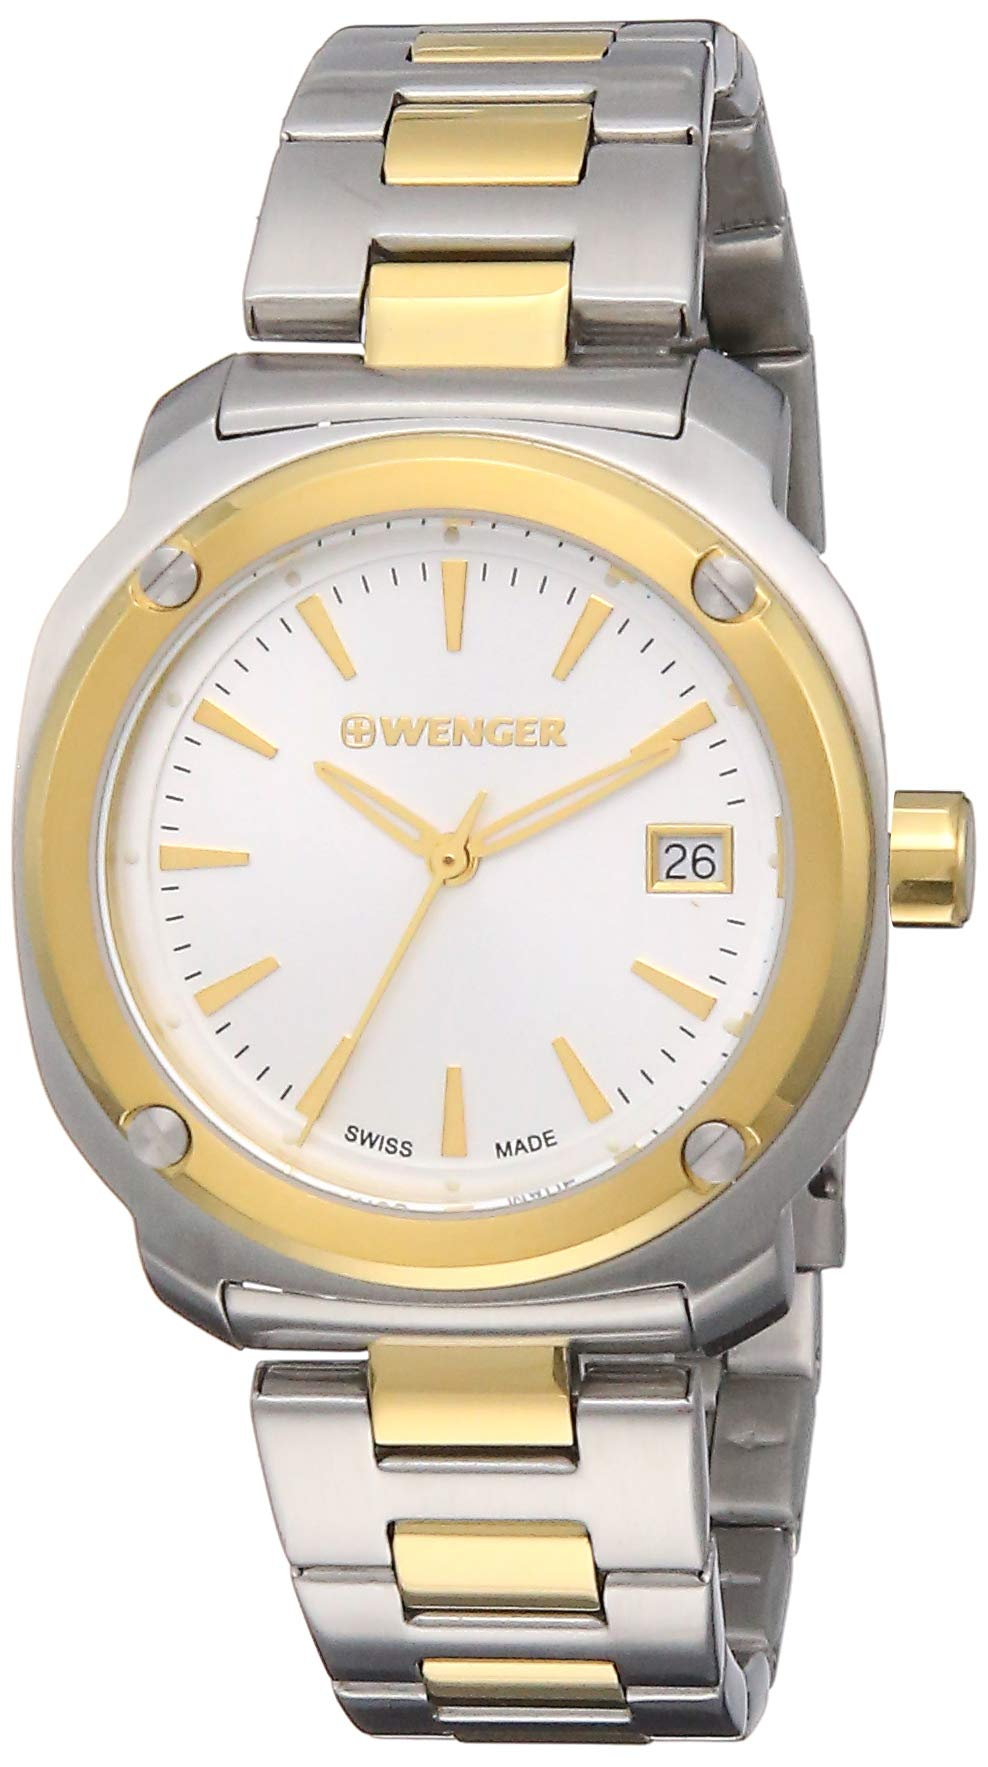 Wenger Women's Analogue Quartz Watch with Stainless Steel Strap 01.1121.106